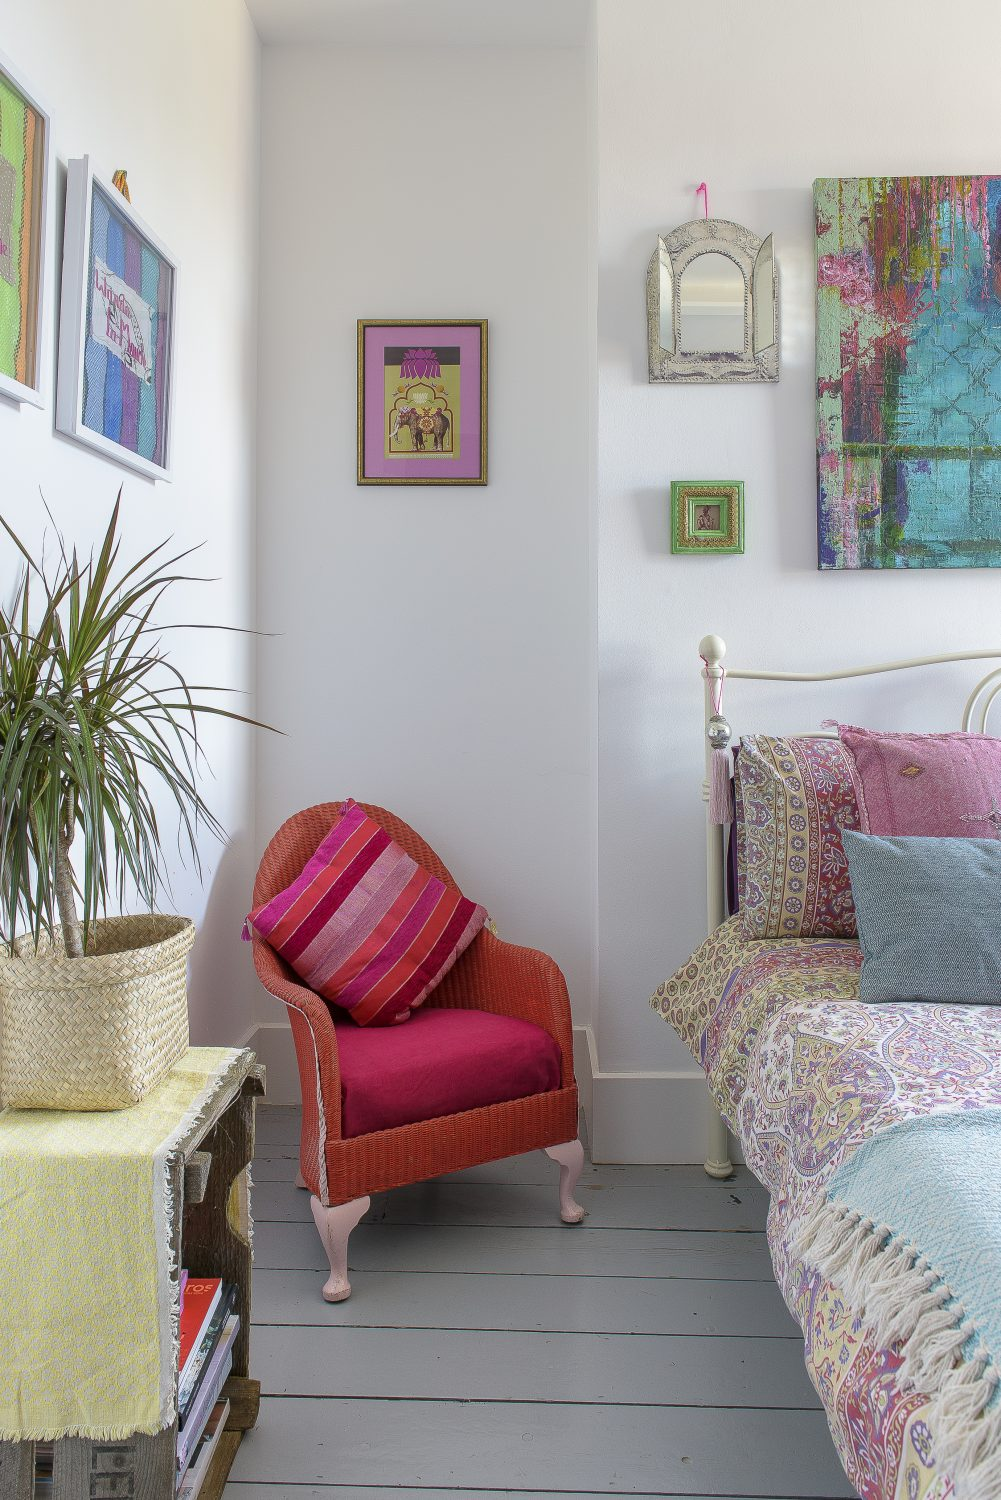 A colourful guest bedroom is filled with artworks collected on the couple's travels